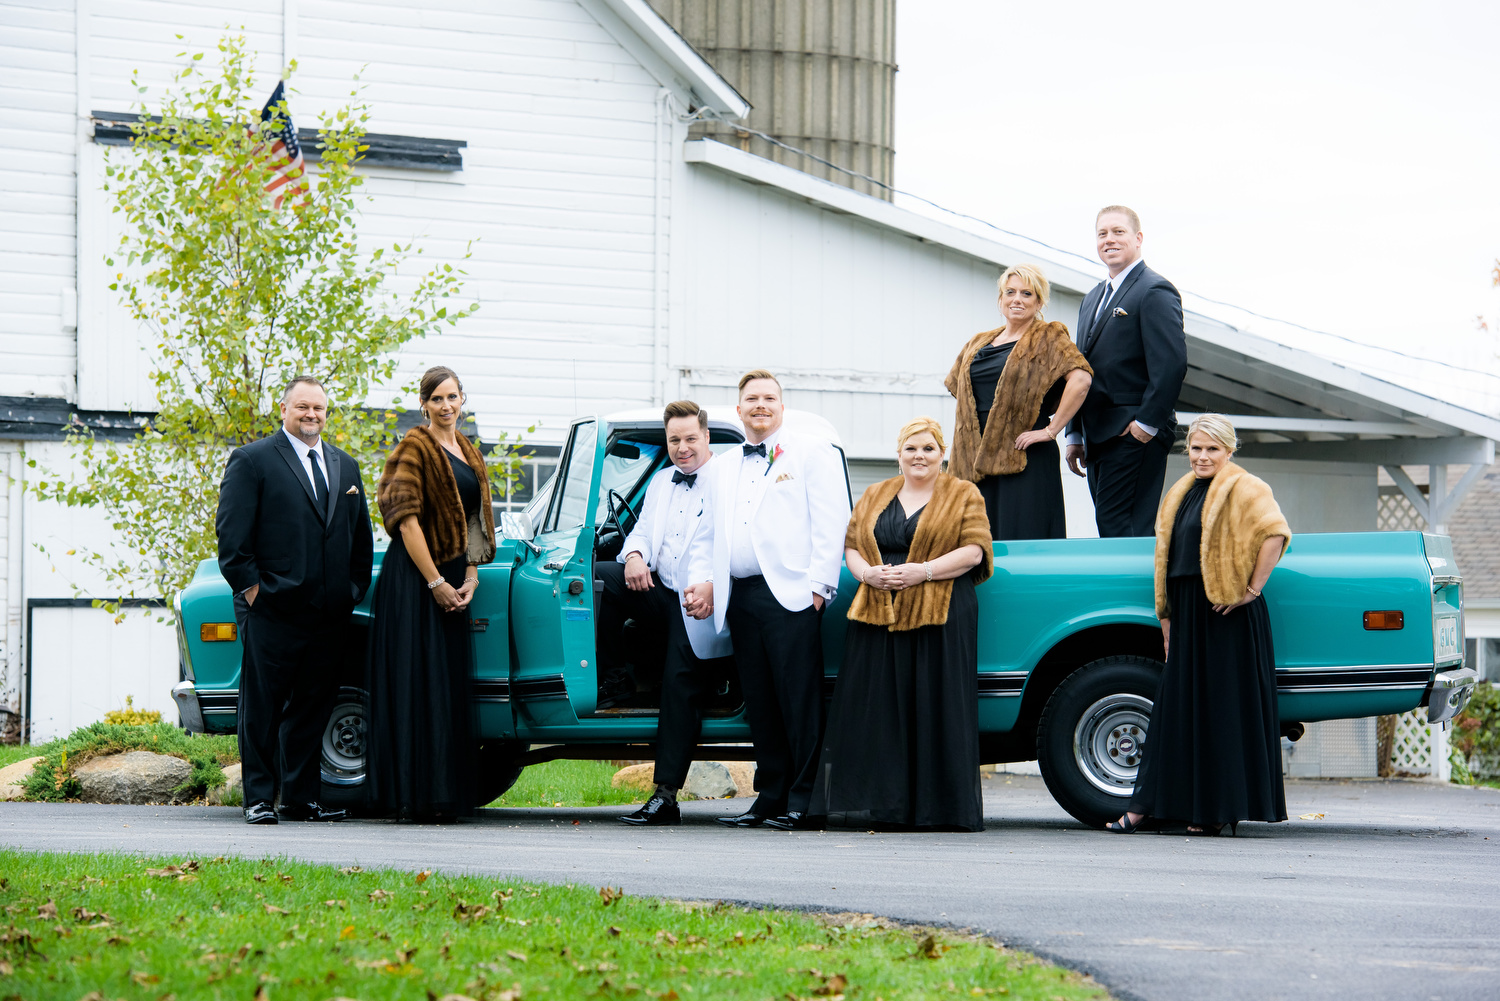 Wedding party photo at Heritage Prairie Farm.